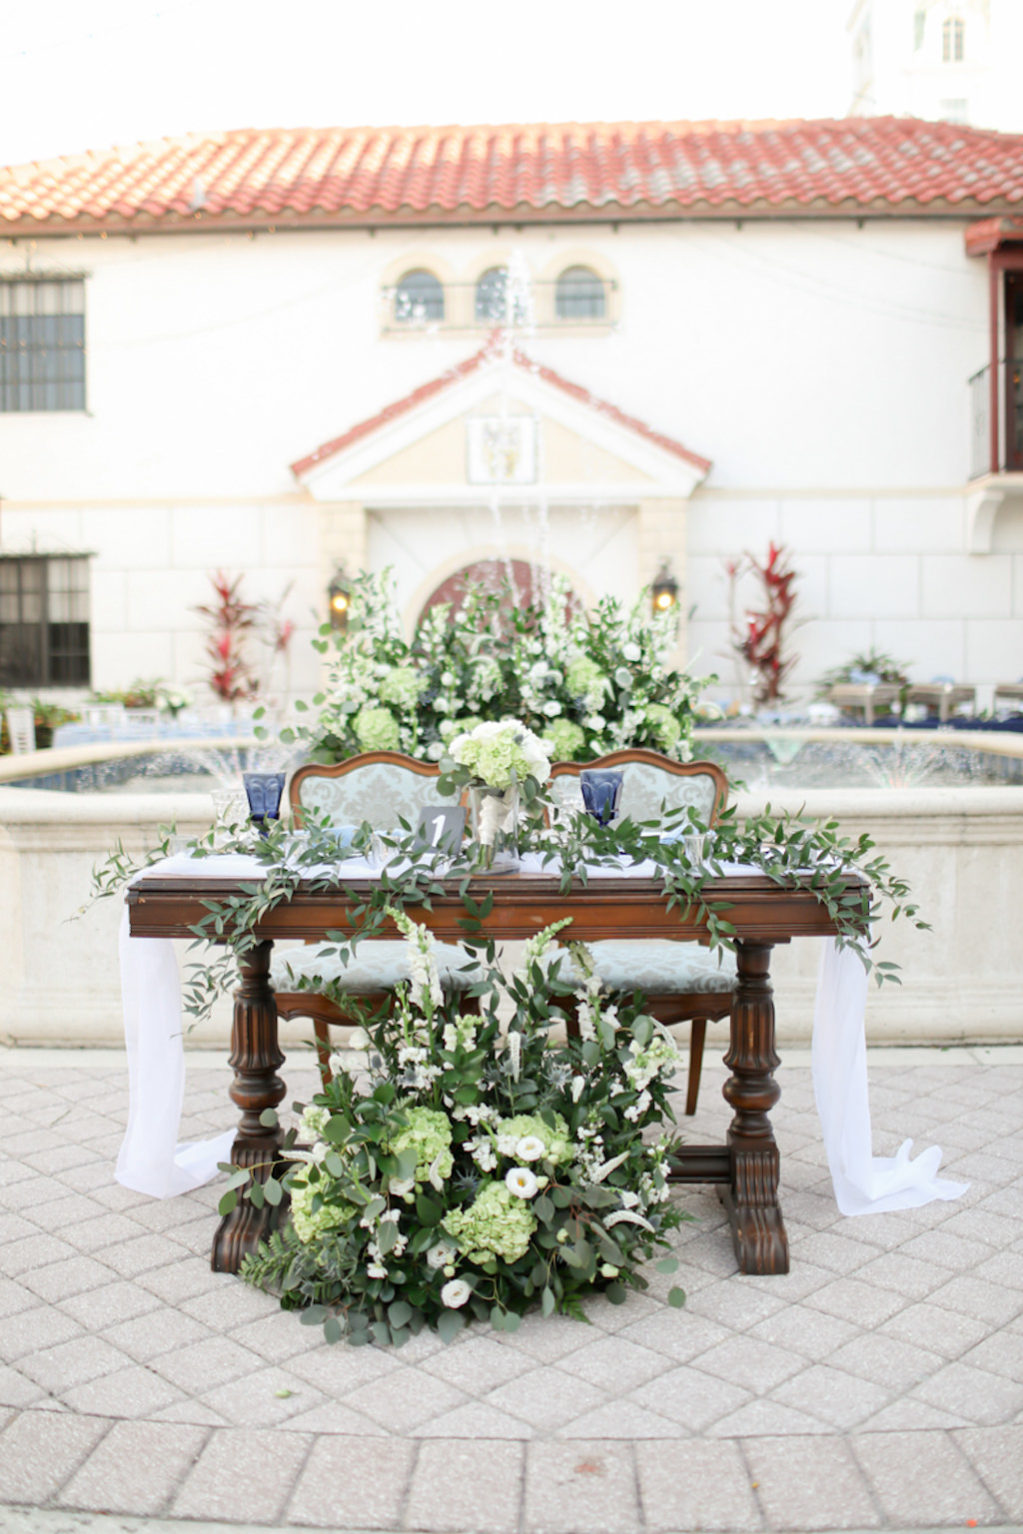 Rustic Elegant Wedding Reception Decor, Wooden Sweetheart Table with White Table Runner, Greenery, White, Ivory Floral Arrangements and Centerpiece | Wedding Photographer Lifelong Photography Studios | Wedding Venue Bishop Museum of Science and Nature | Sarasota Wedding Planner Kelly Kennedy Weddings and Events